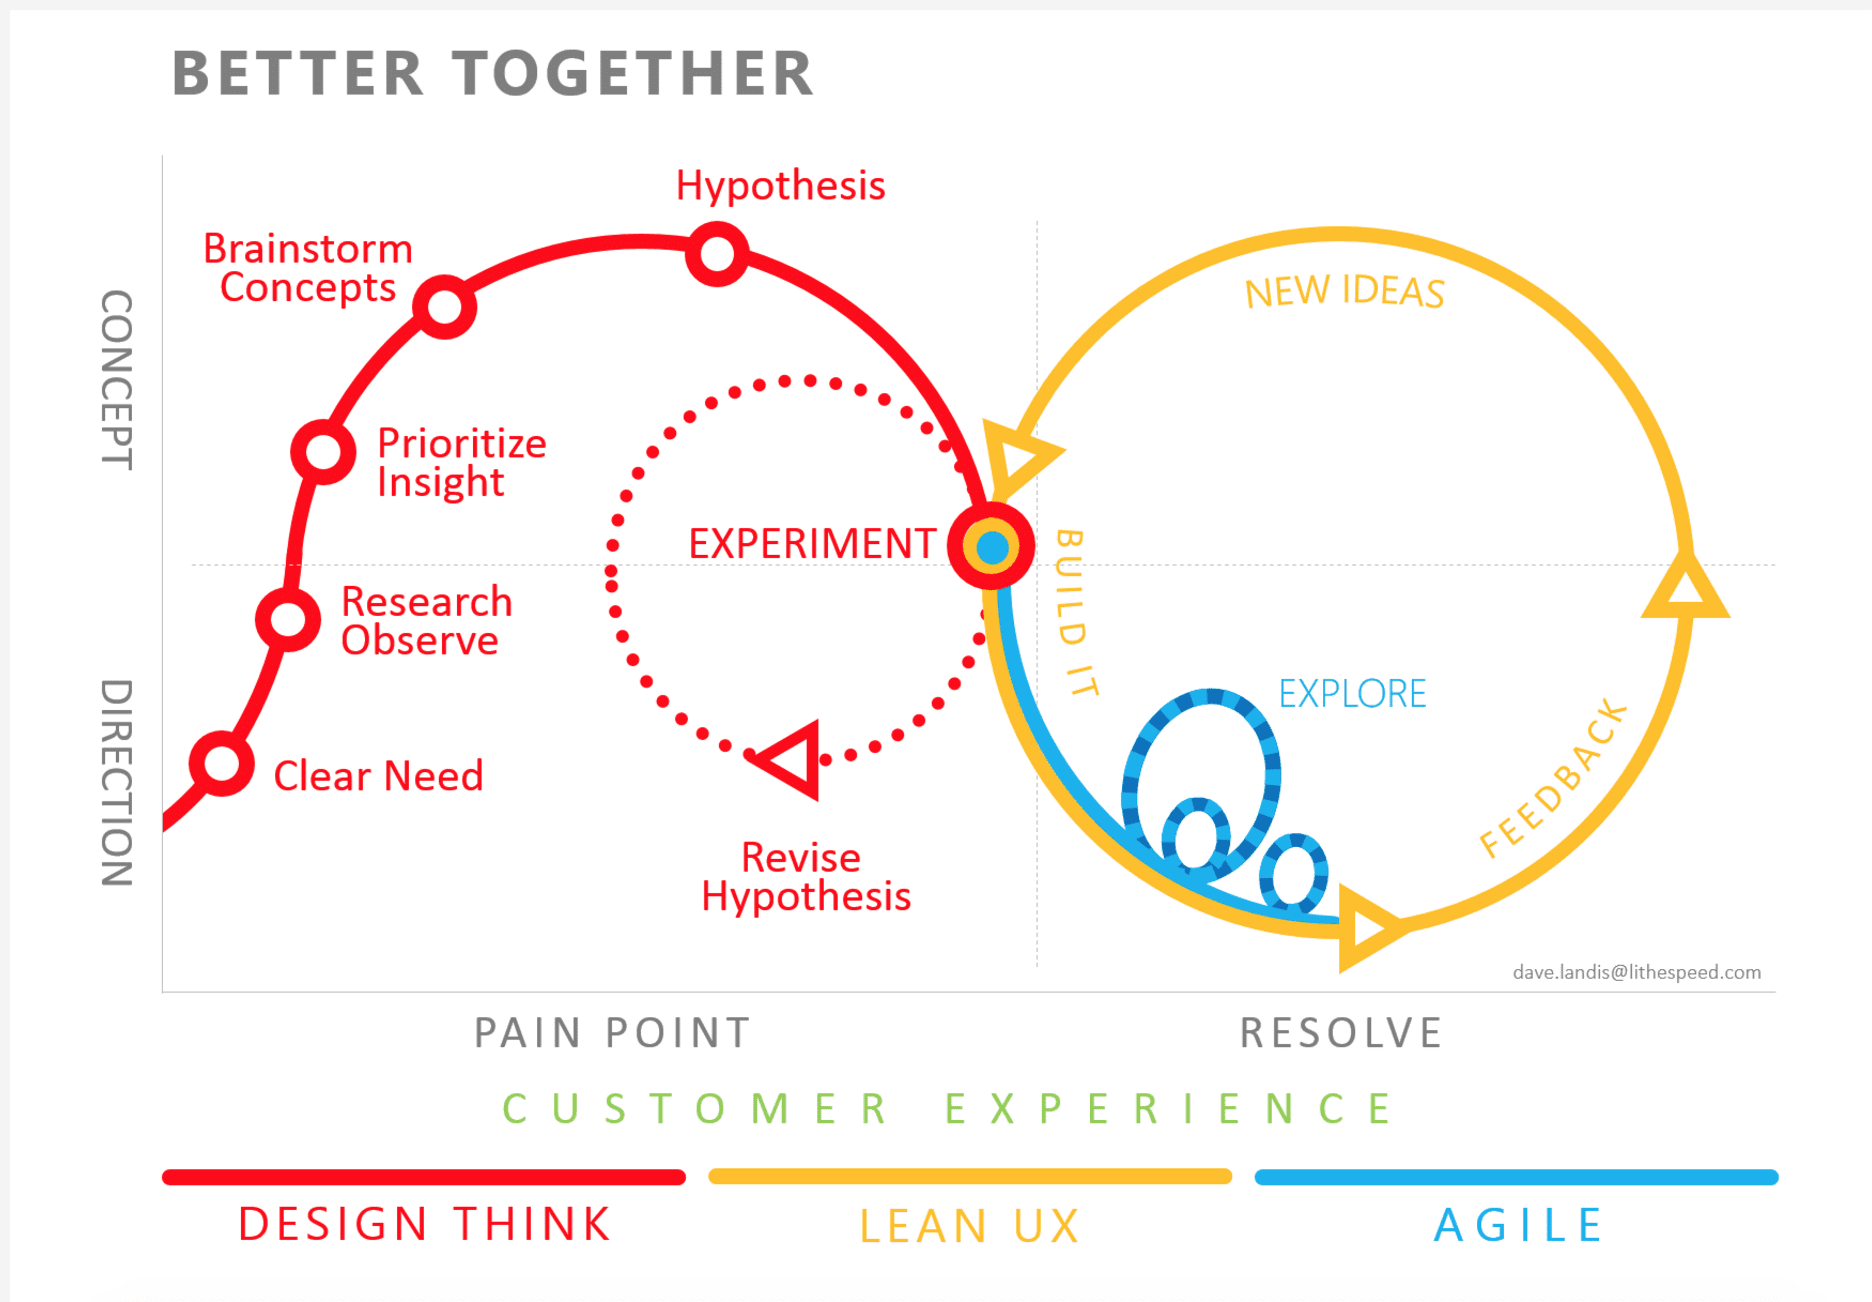 The Lean UX process